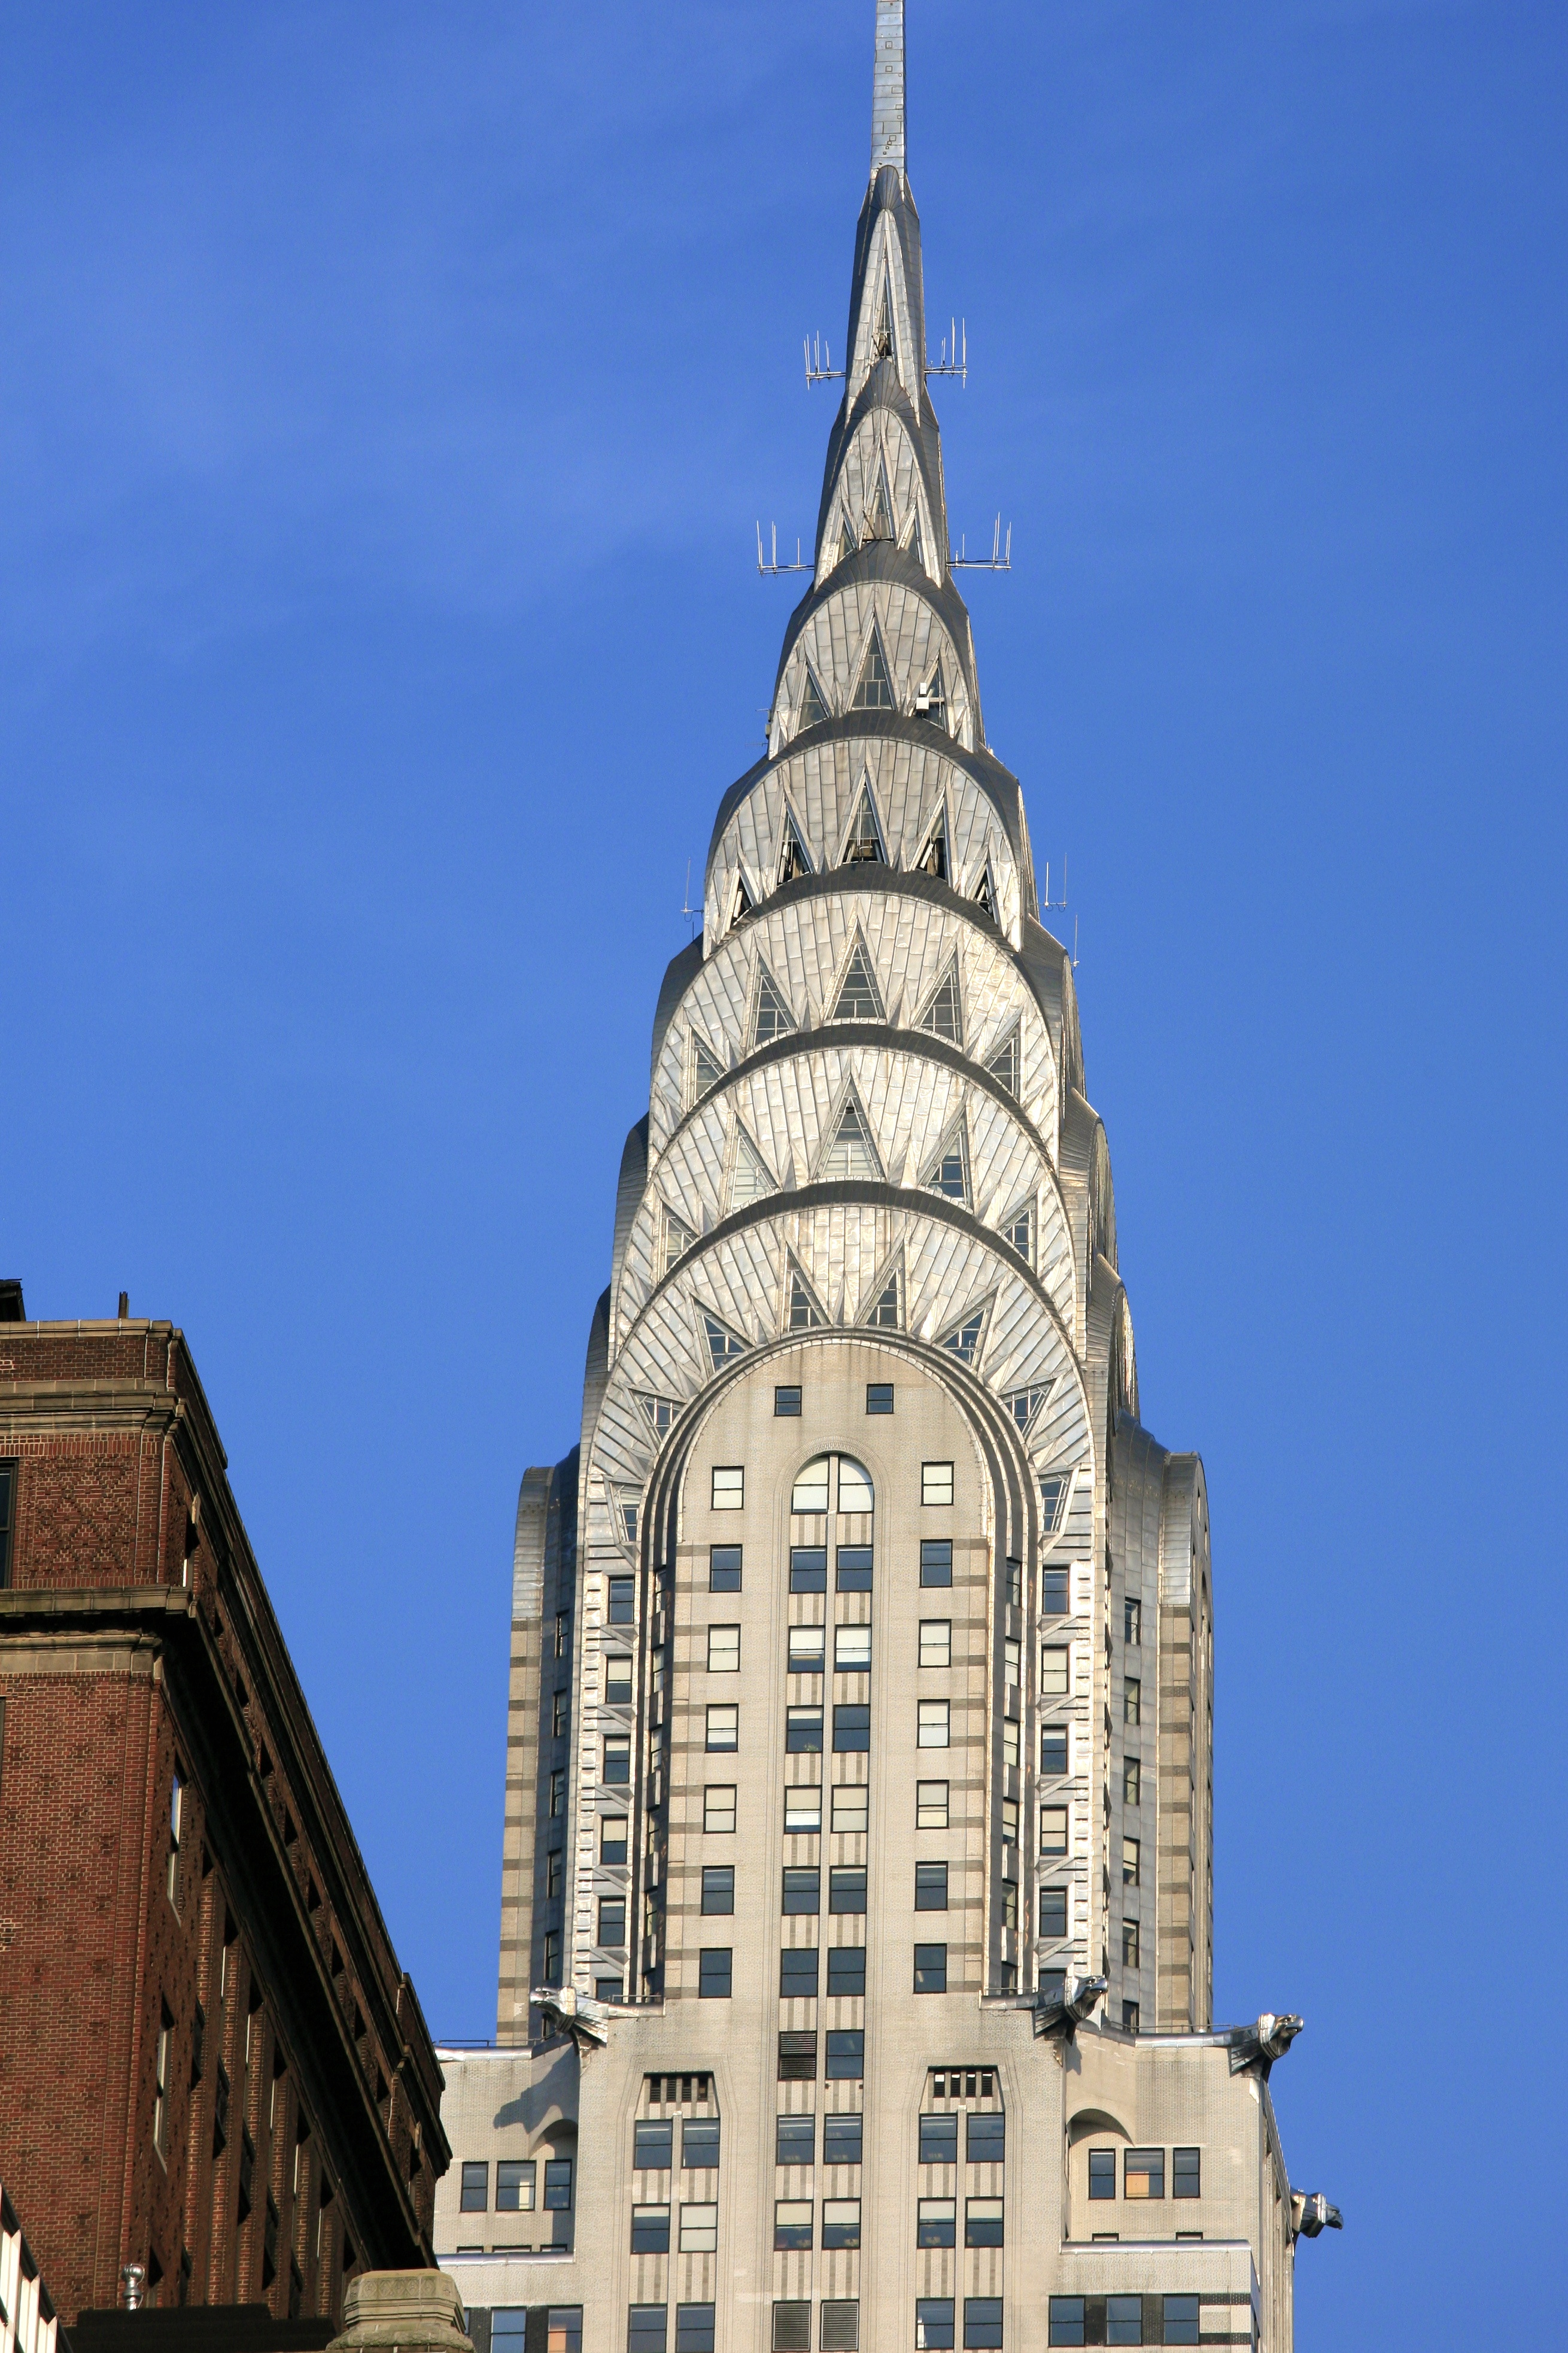 chrysler building pictures to pin on pinterest pinsdaddy. Cars Review. Best American Auto & Cars Review